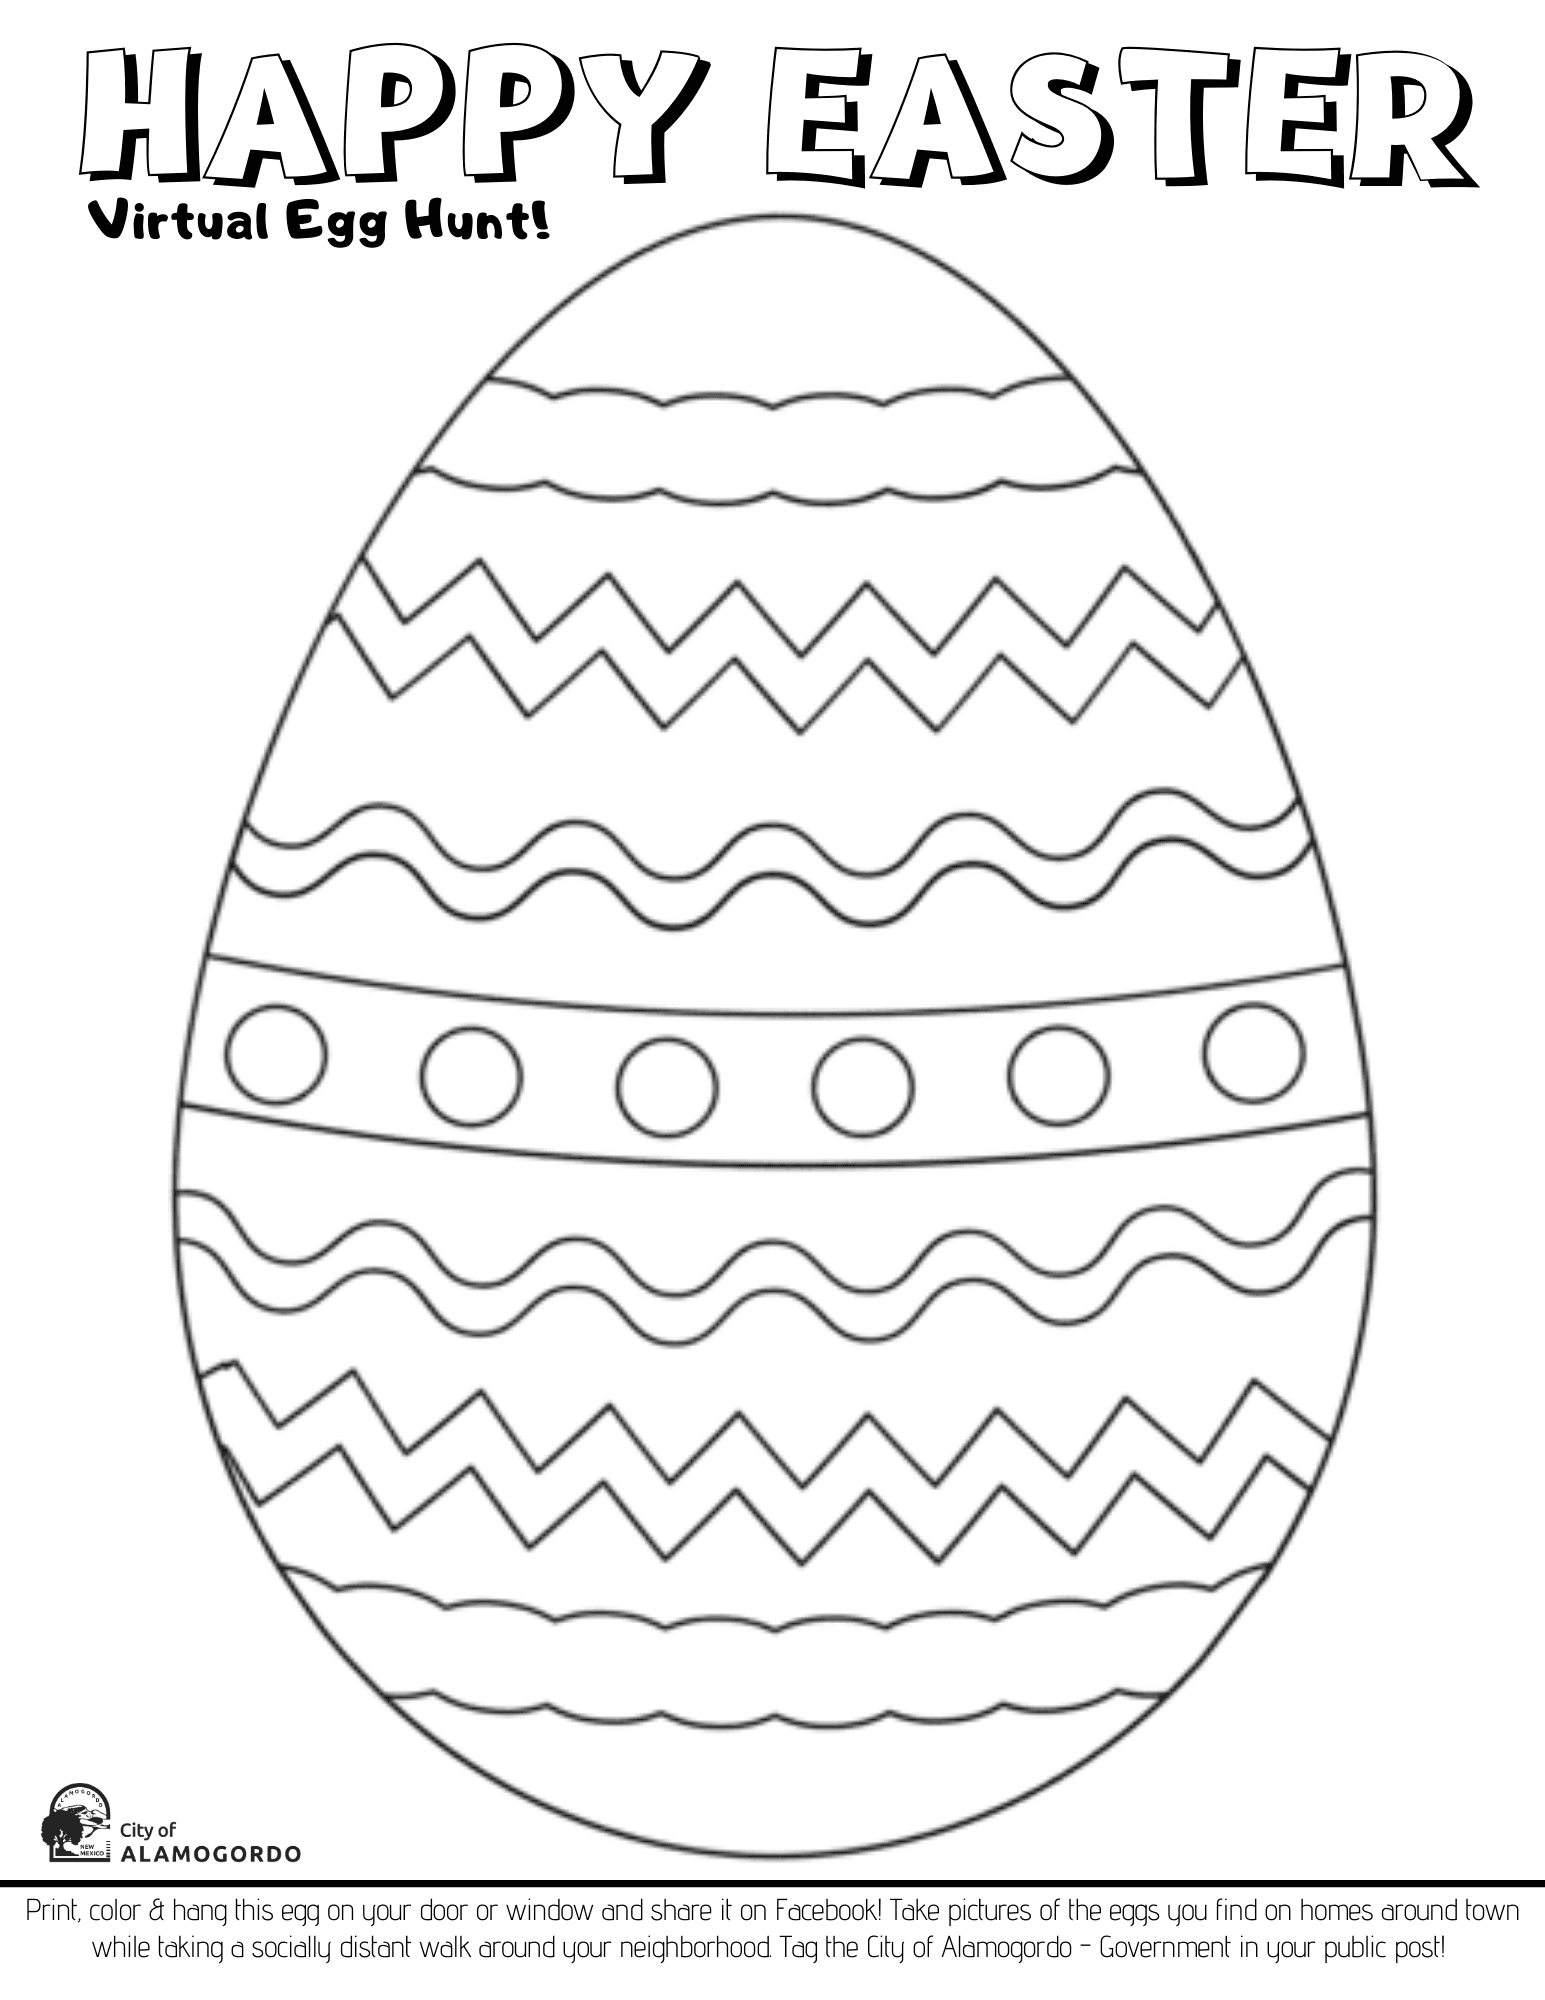 Virtual Egg Hunt Coloring Page